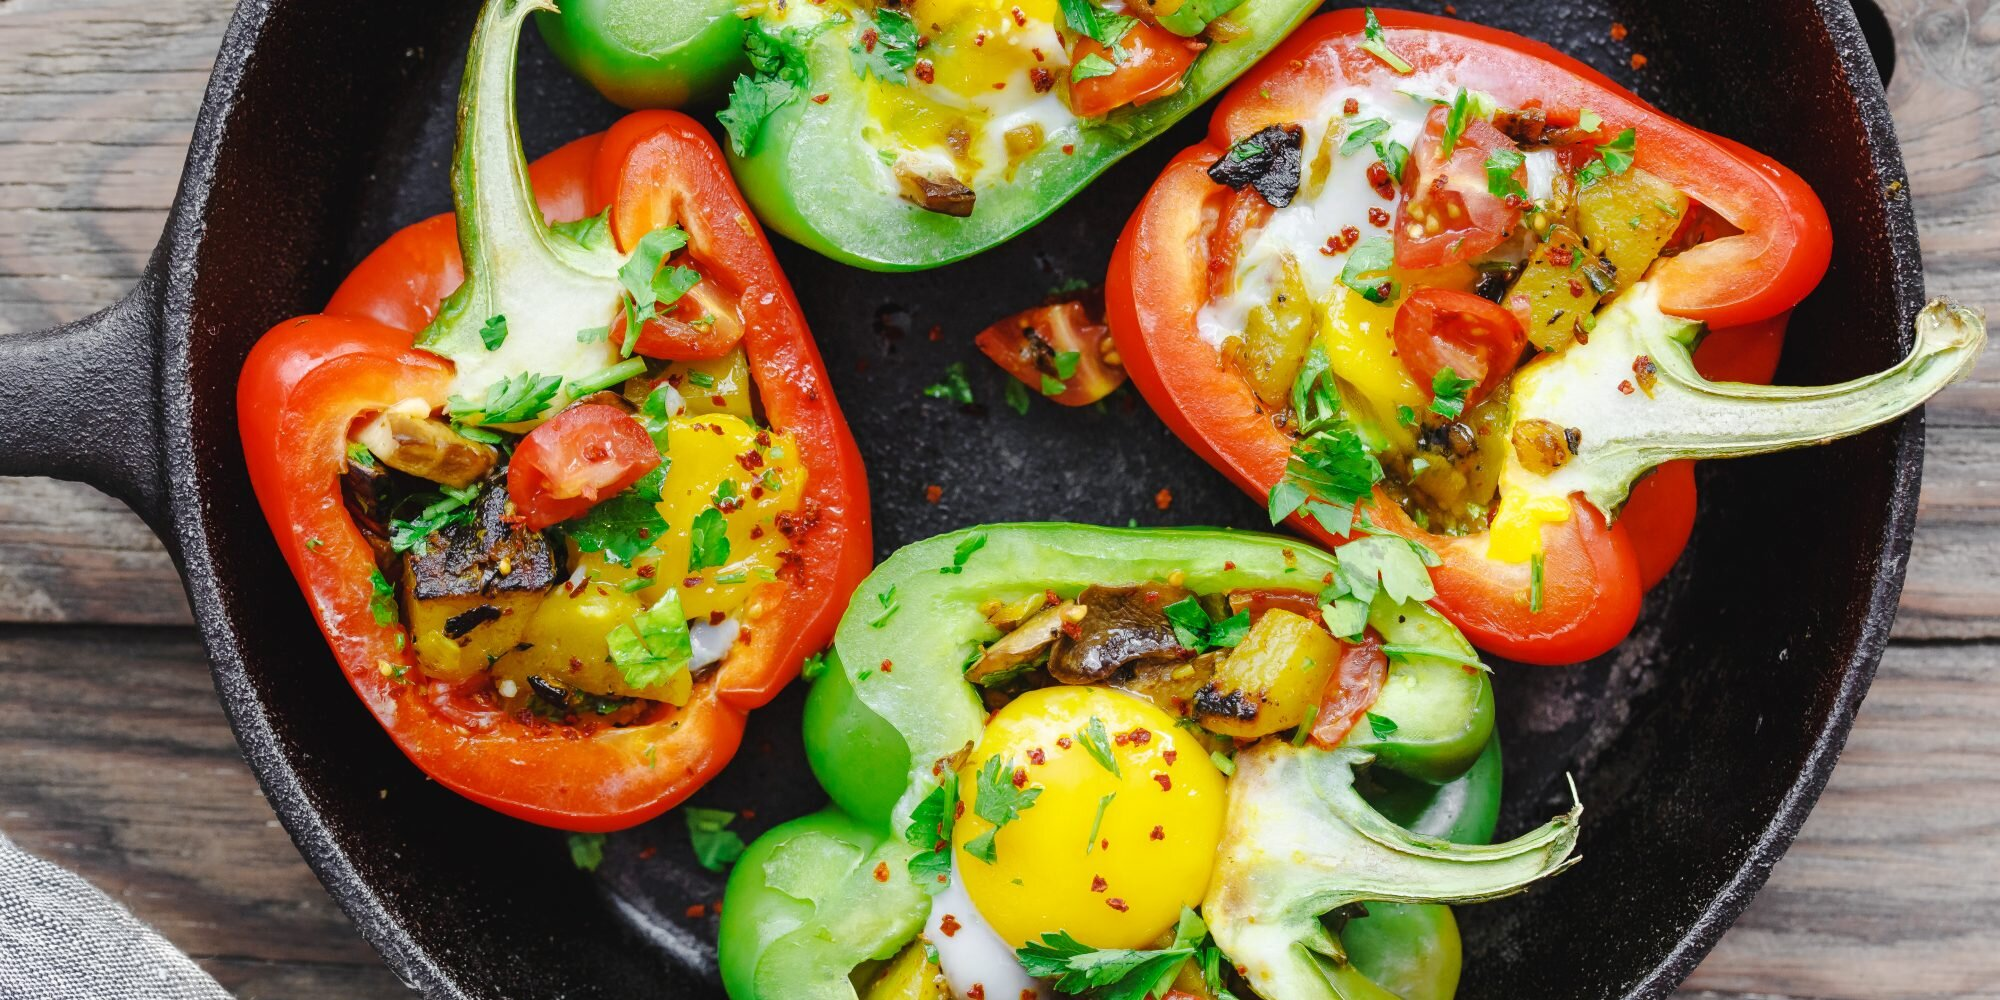 How to Cook Those Viral Egg and Potato Stuffed Peppers to Perfection